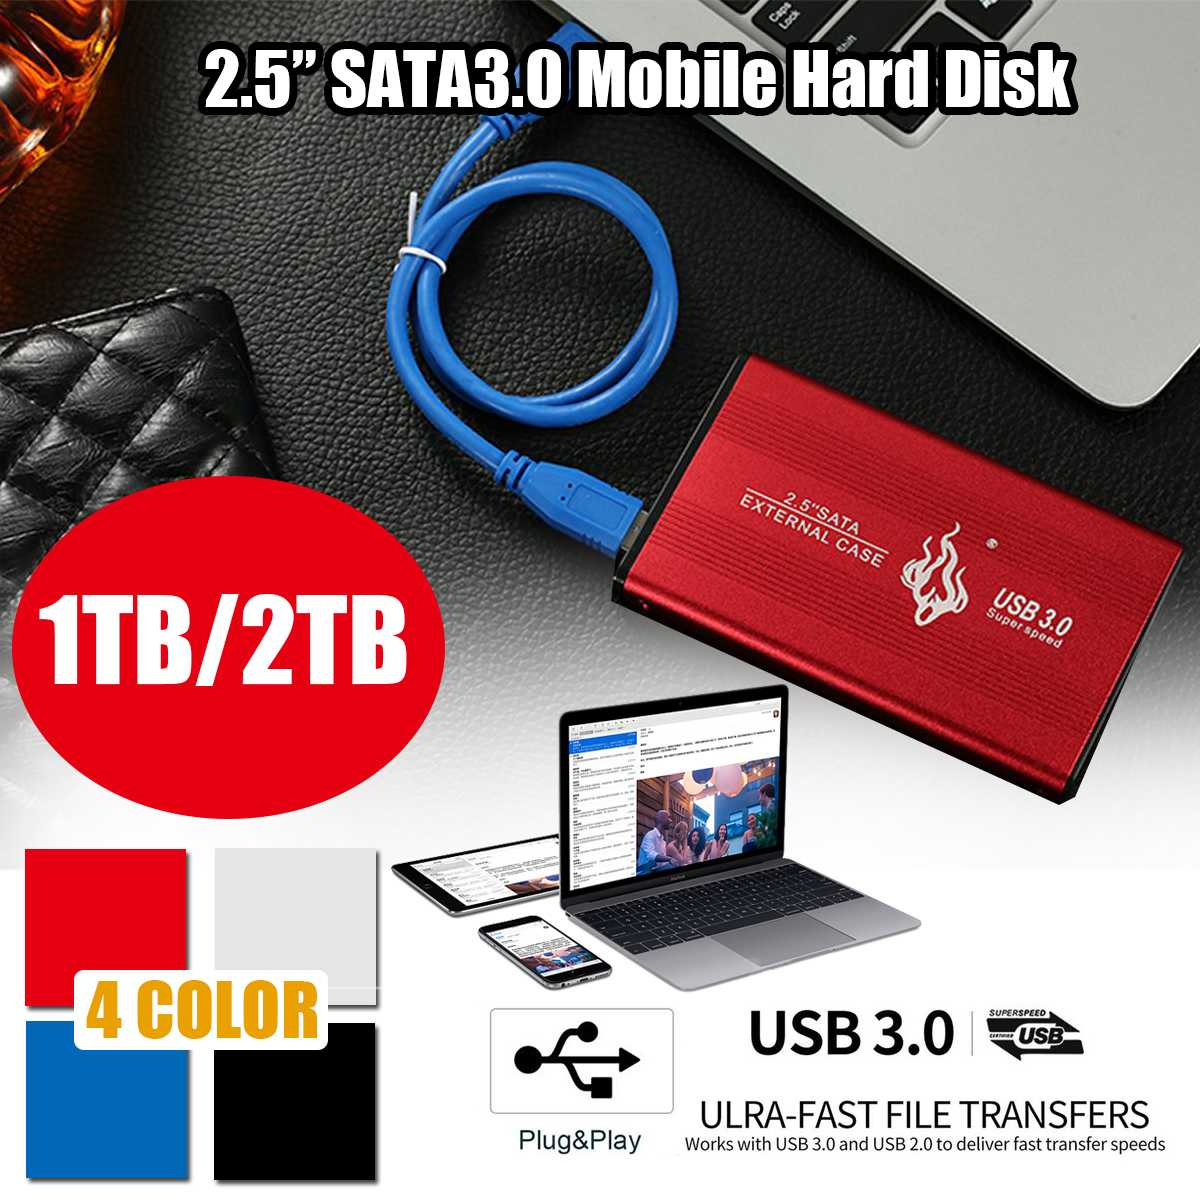 HTS-YP005 2.5 Inch SATA 3.0 External Hard Drive USB 3.0 Mobile Hard Disk 1TB/2TB 6Gbp For Mac PC TV Box